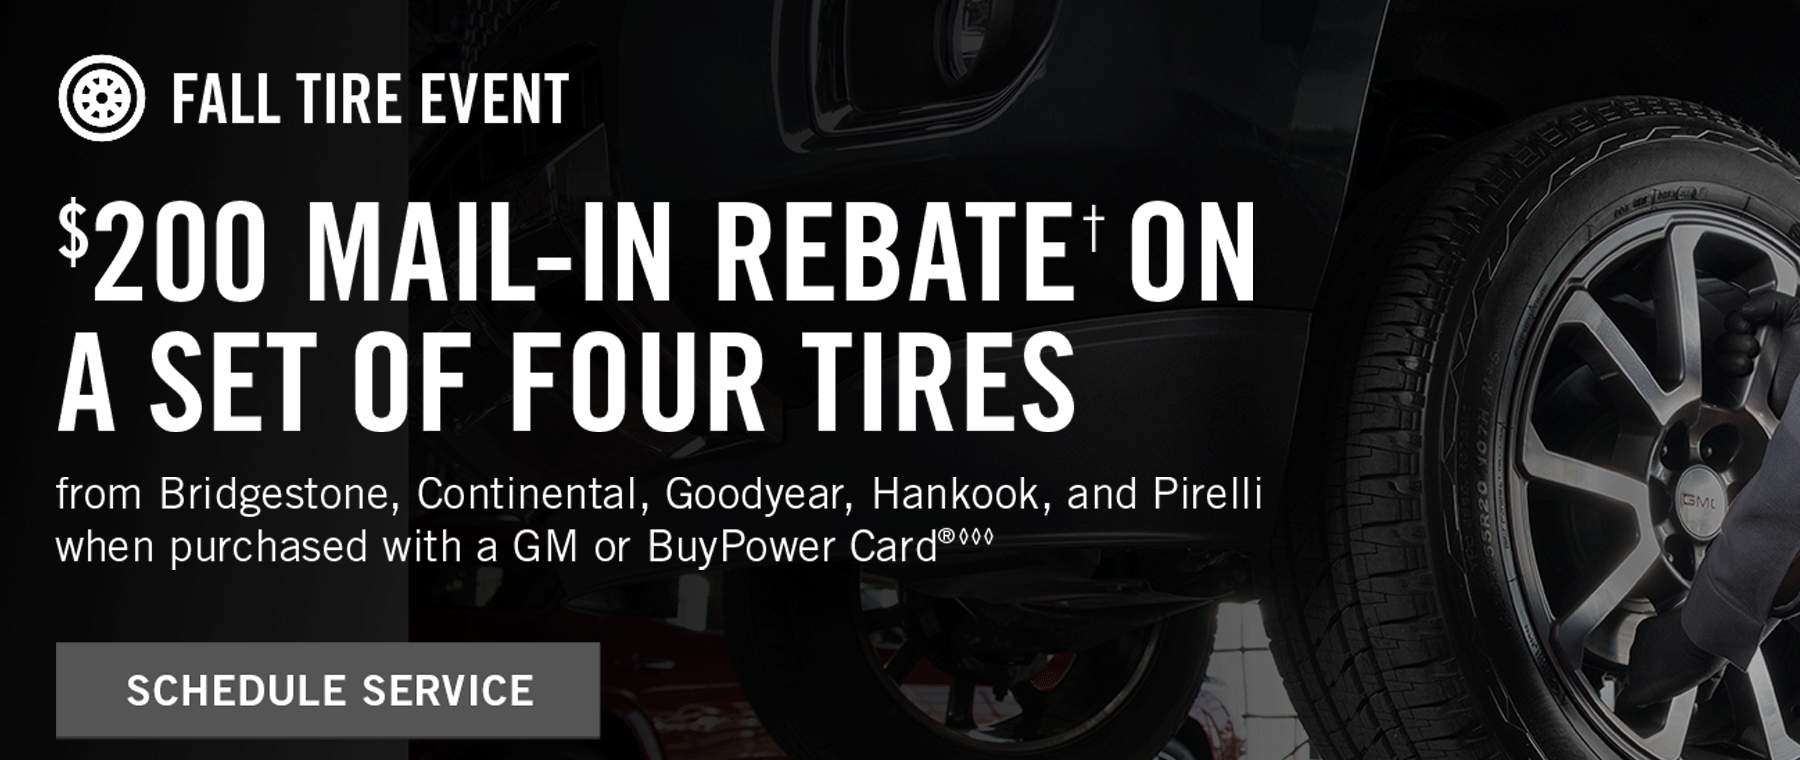 Tire-Offer-BG